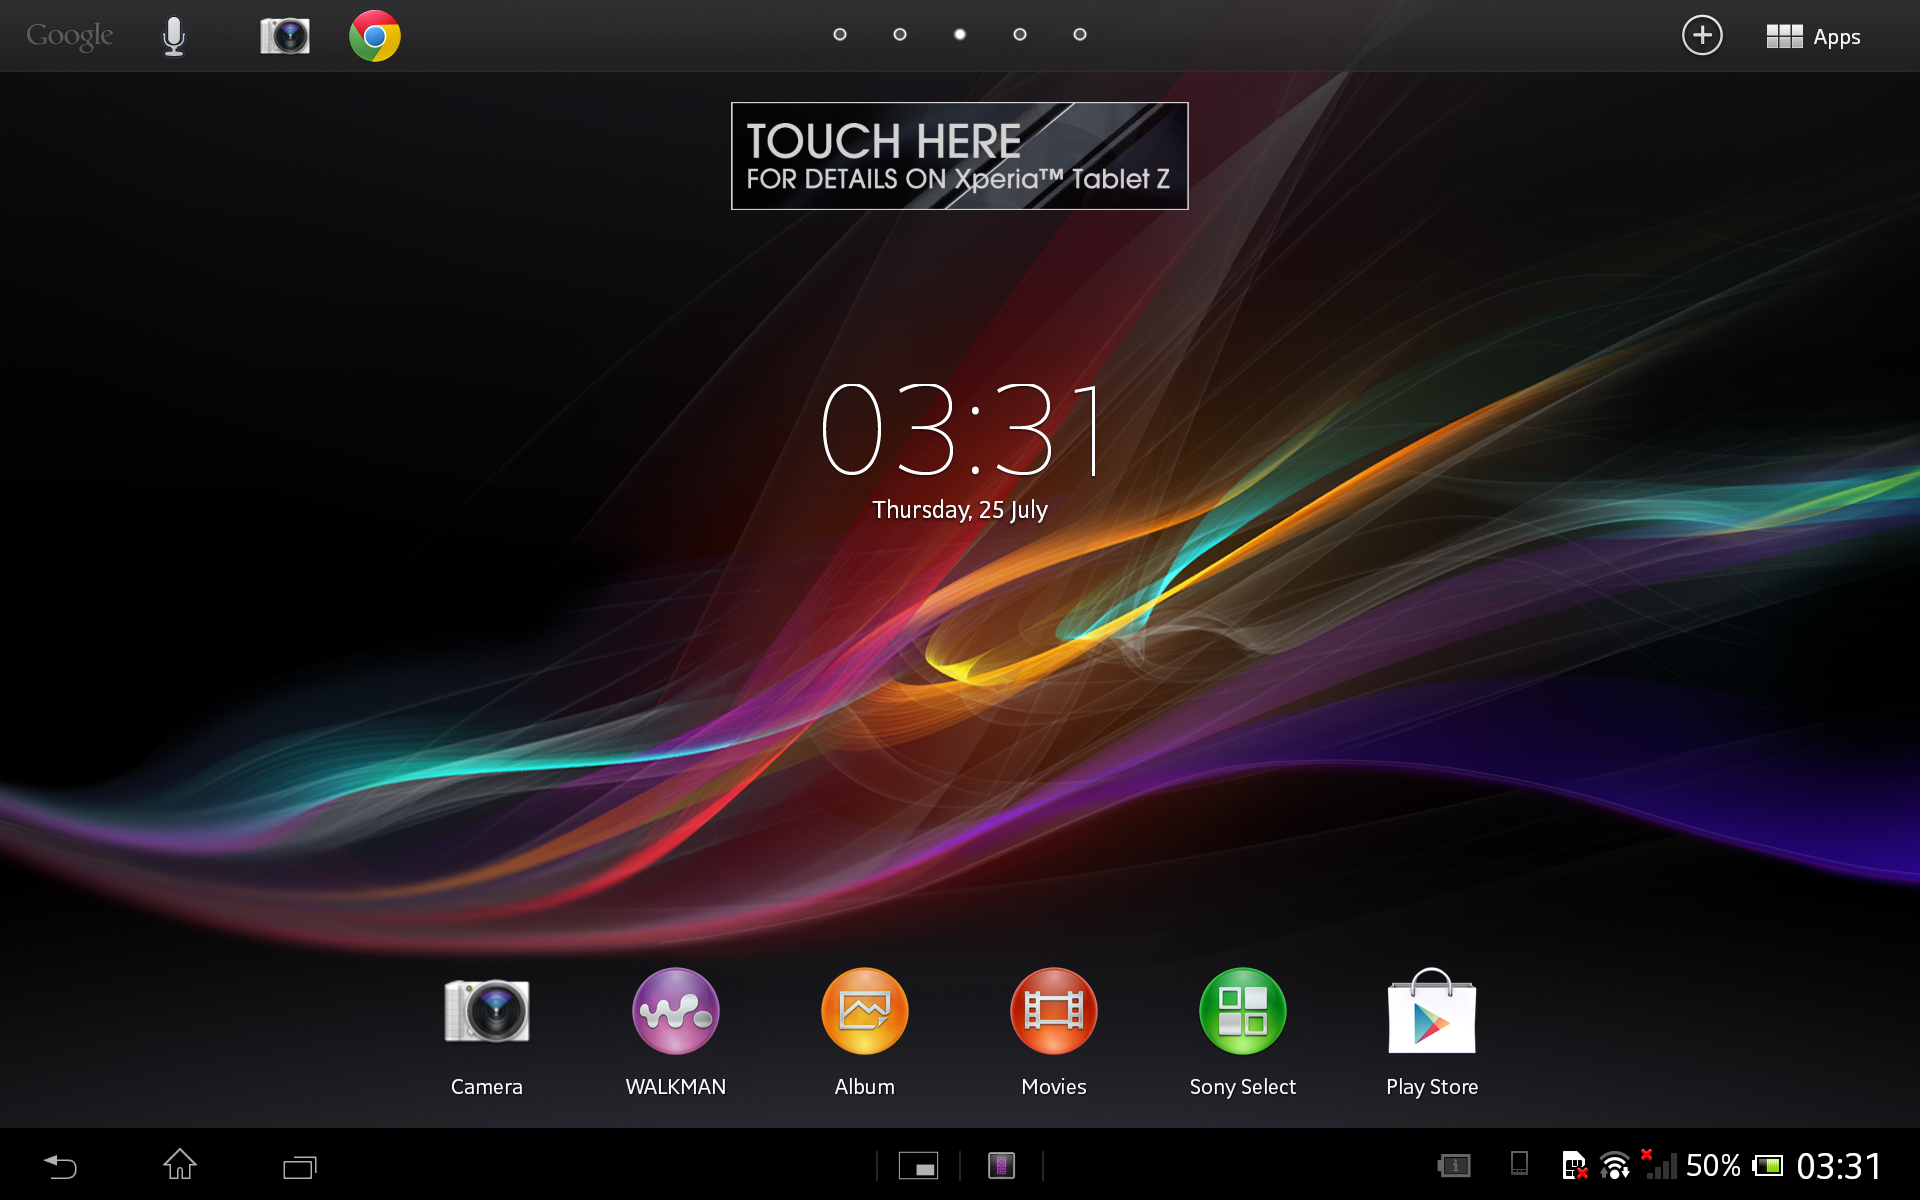 The Tablet Z uses an almost vanilla version of Android 4.1.2 Jelly Bean with just a few improvements by Sony.